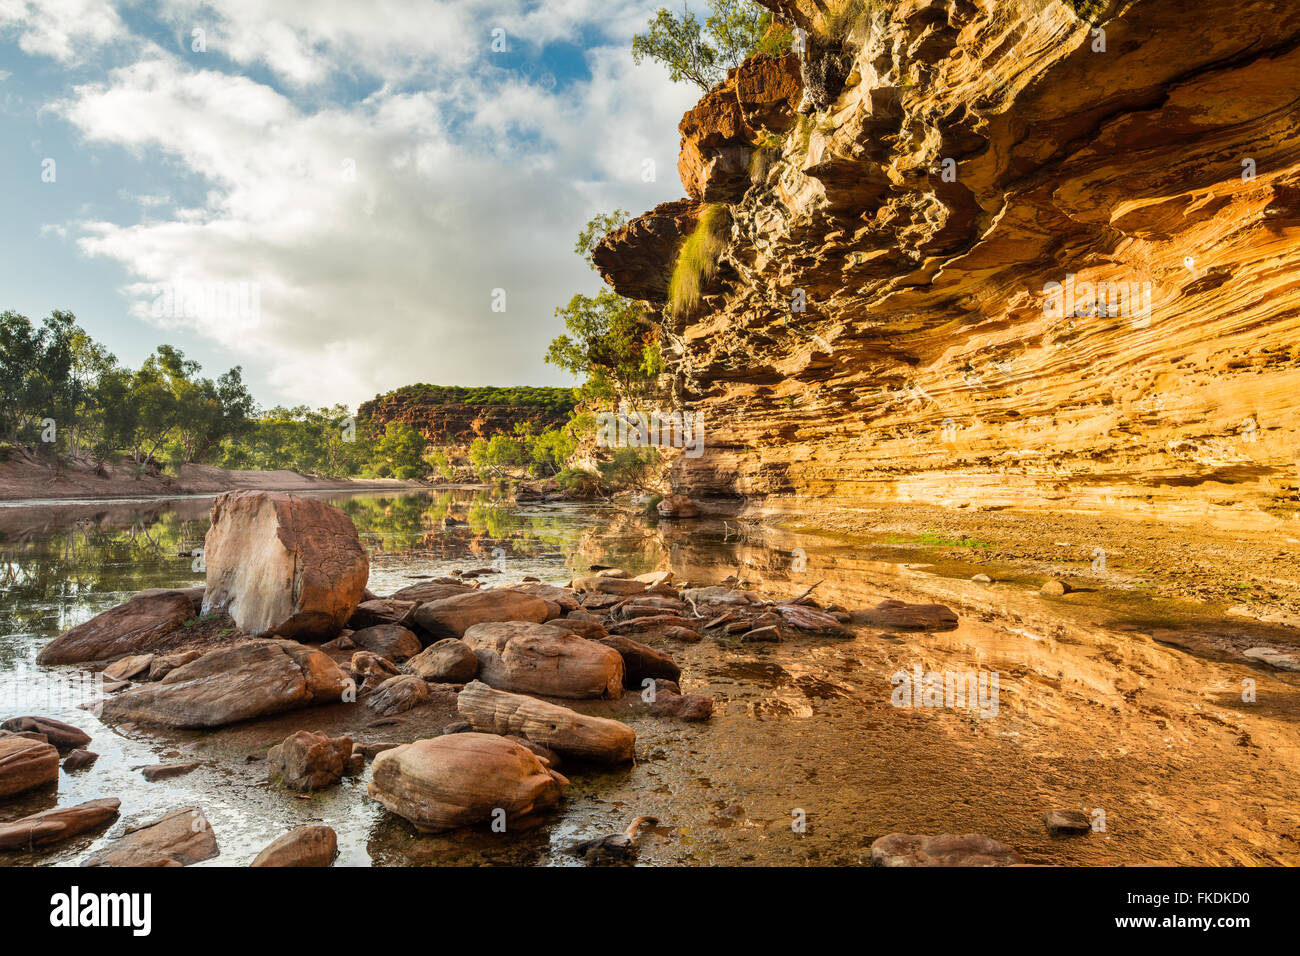 the Murchison River gorge at Ross Graham, Kalbarri National Park, Western Australia - Stock Image